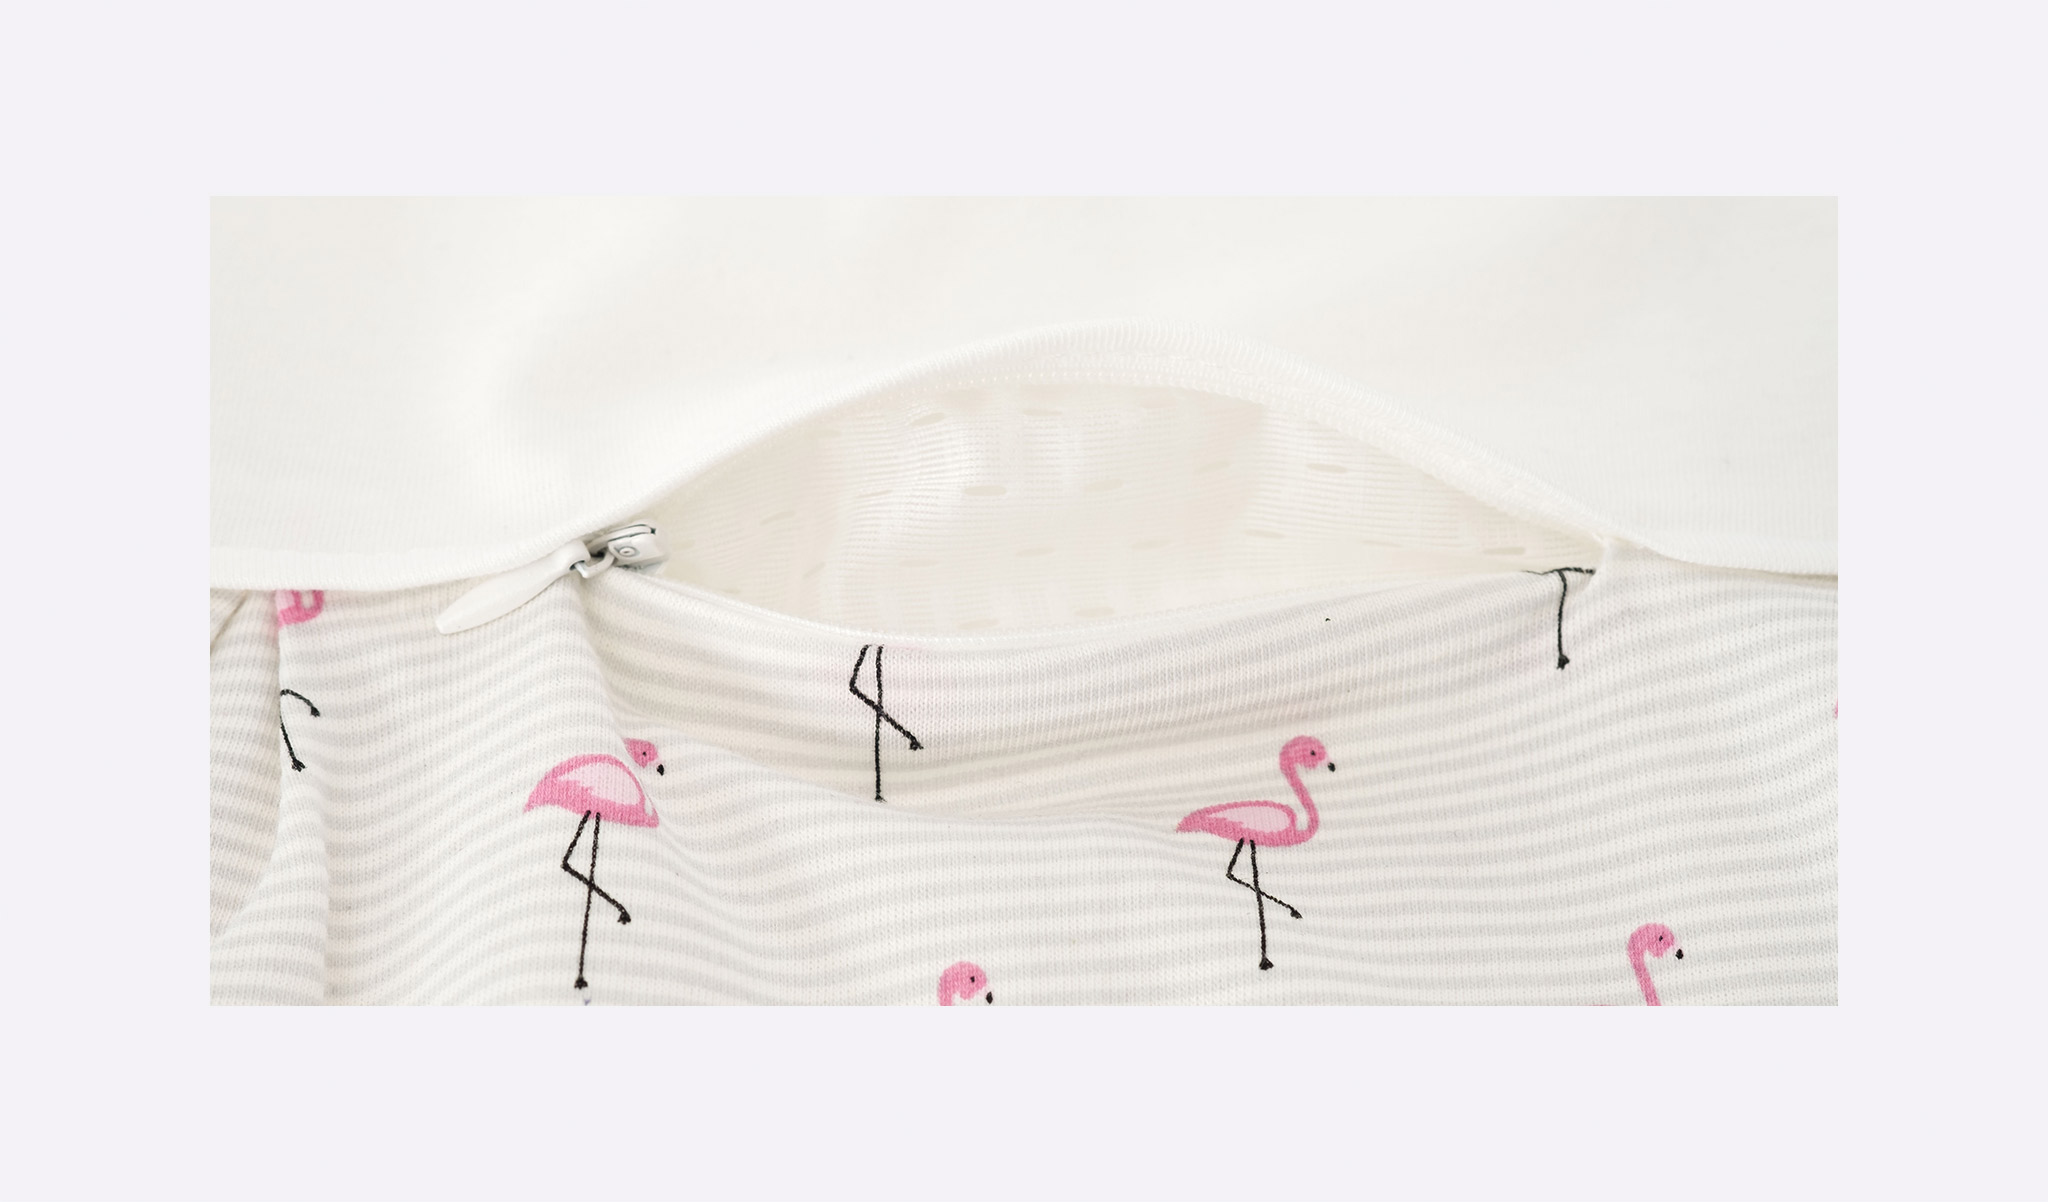 S0102553 - Schlafsack - Set Flamingo